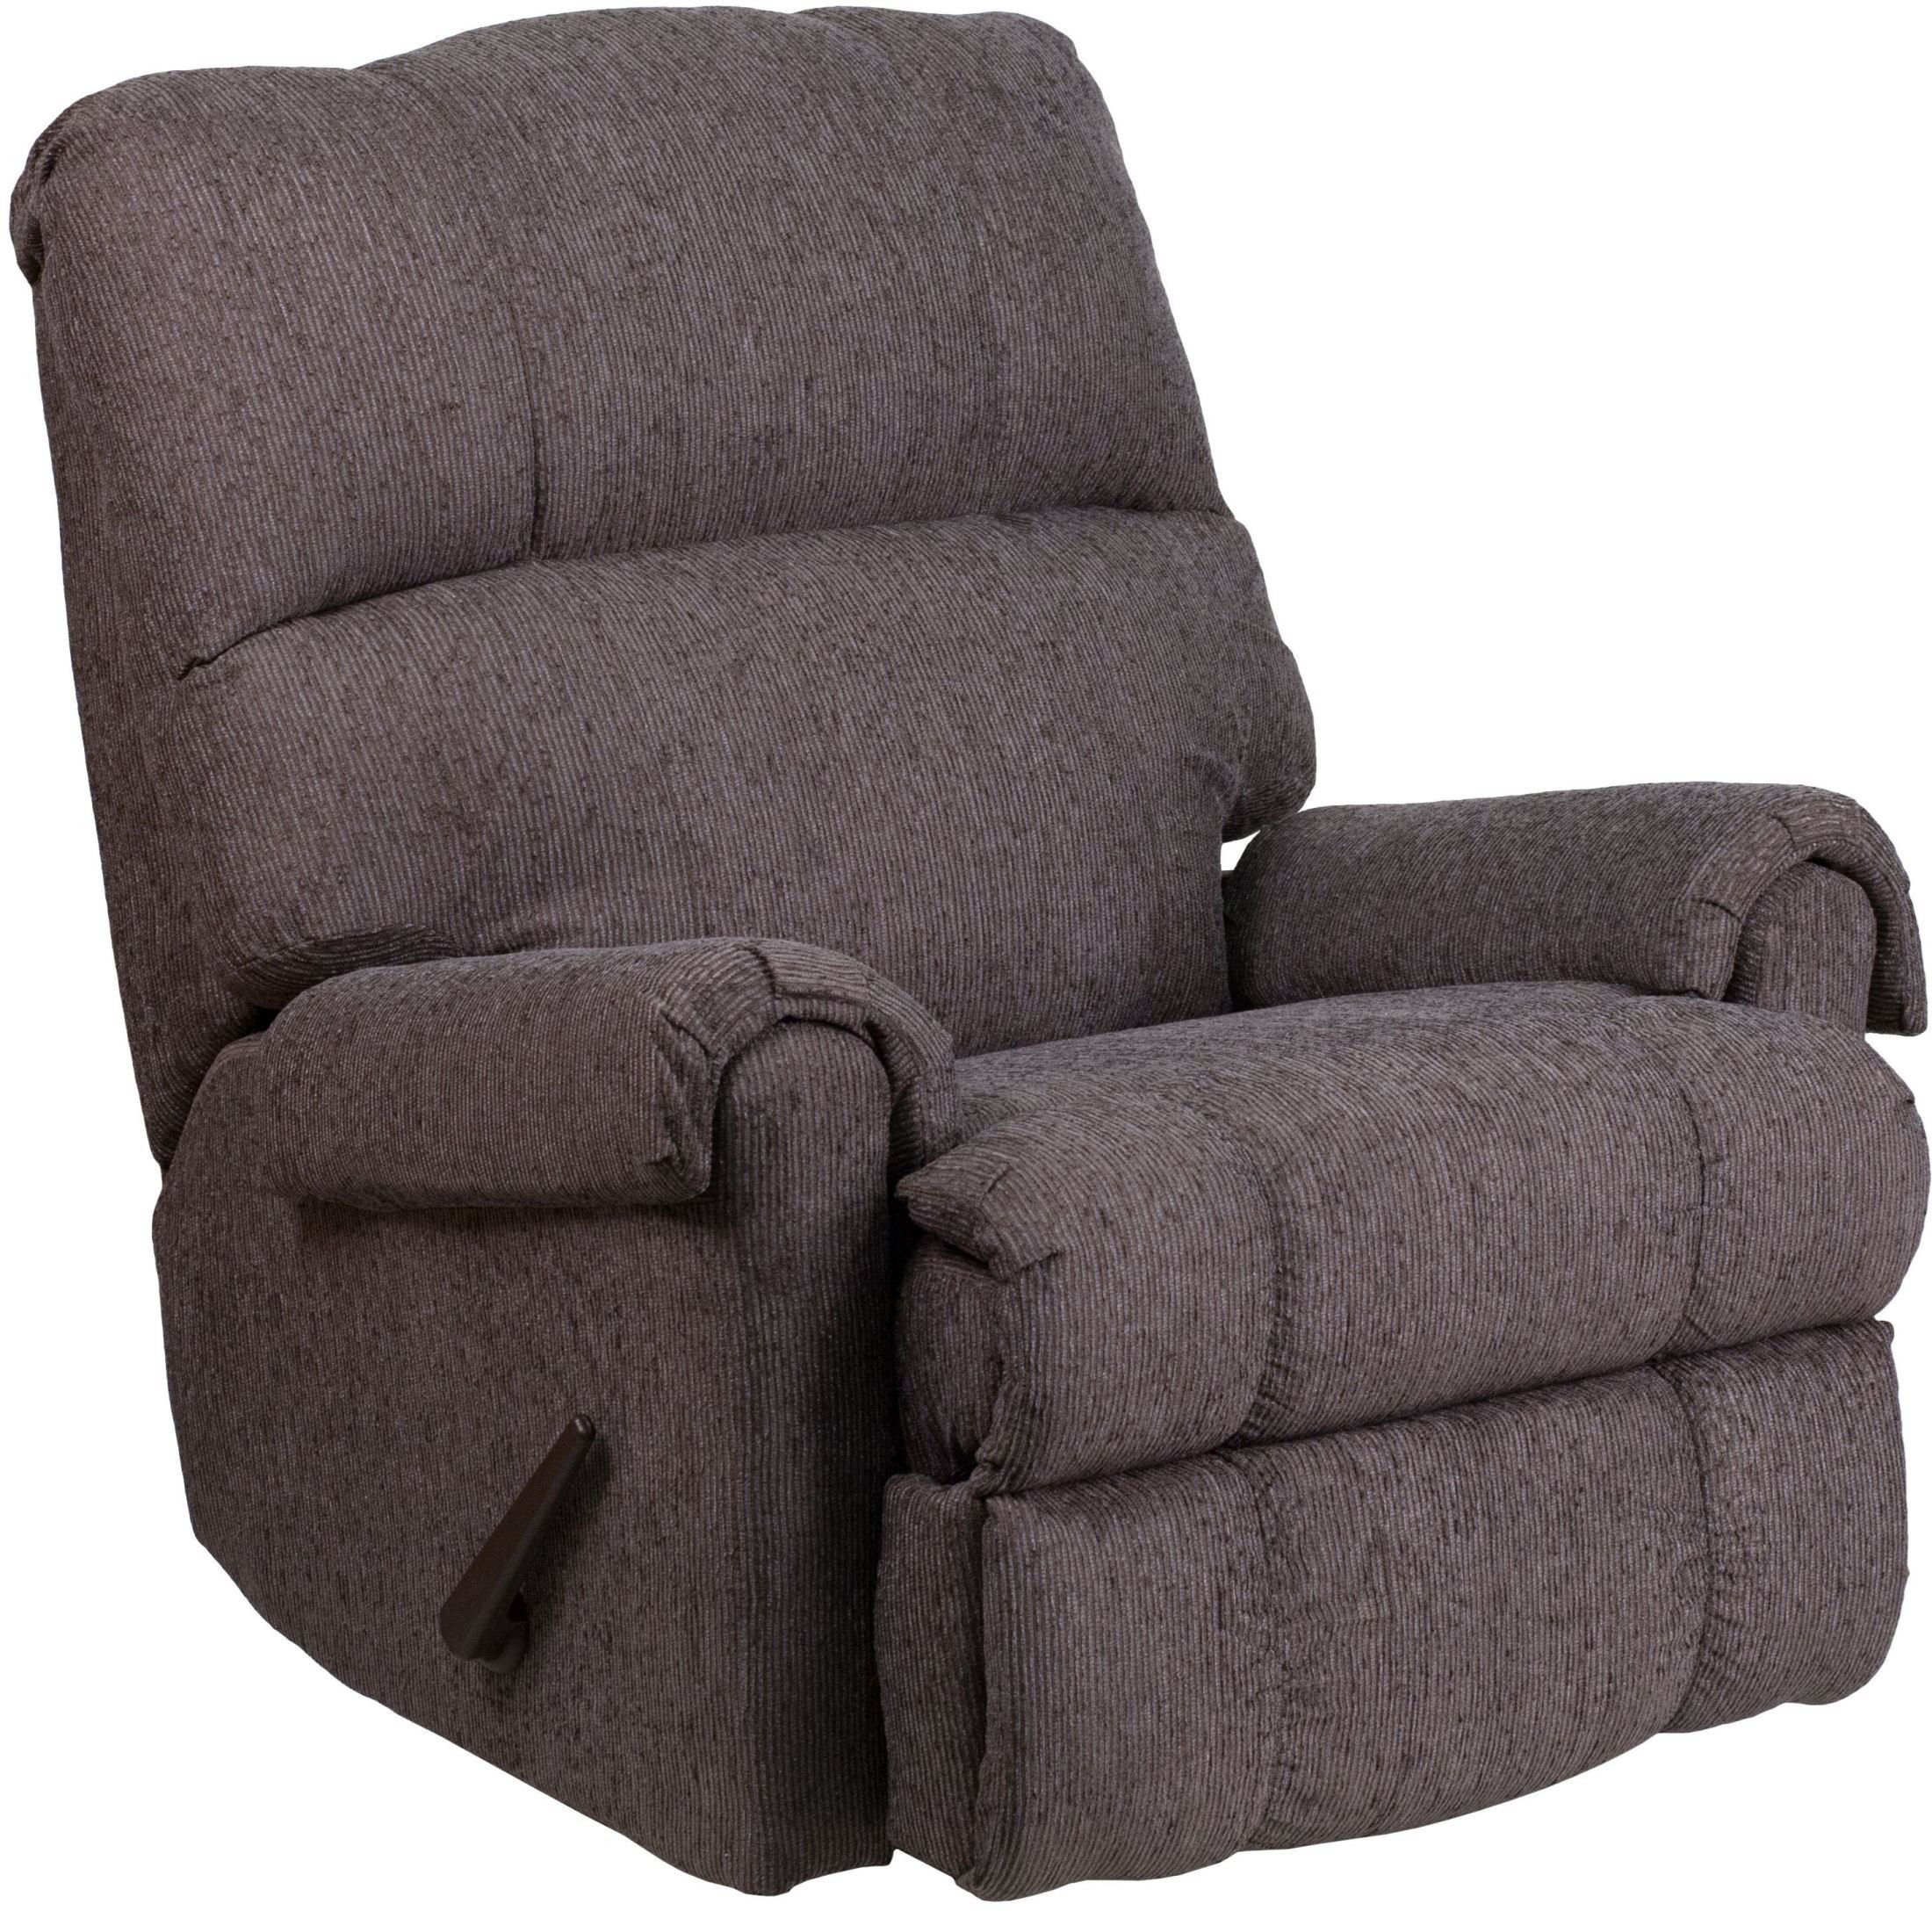 grey rocker recliner ranika gray rocker recliner. Black Bedroom Furniture Sets. Home Design Ideas